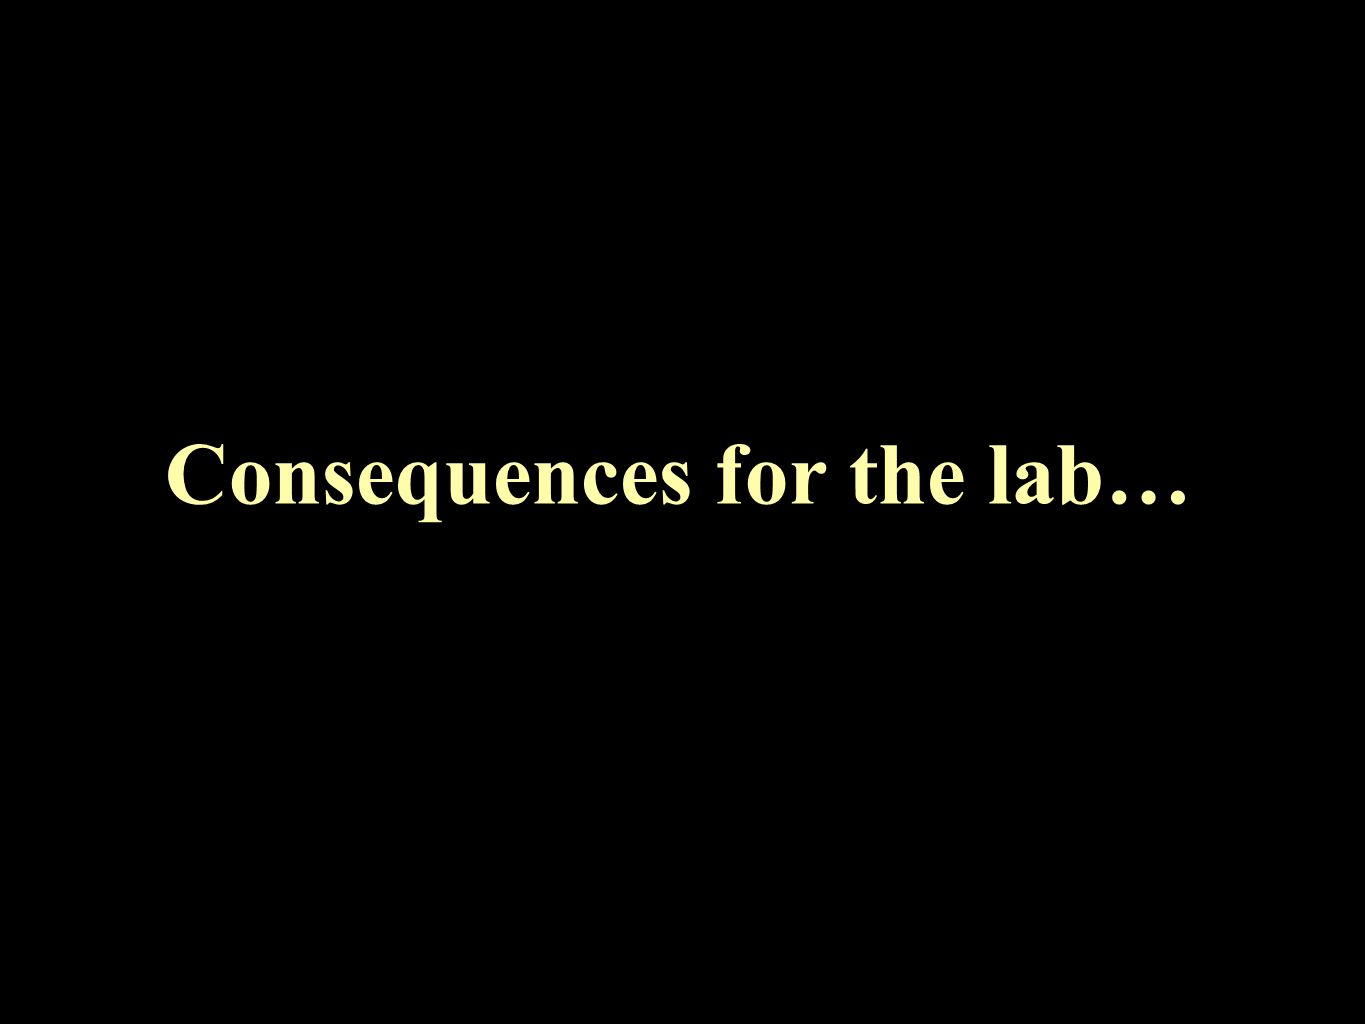 Consequences for the lab…